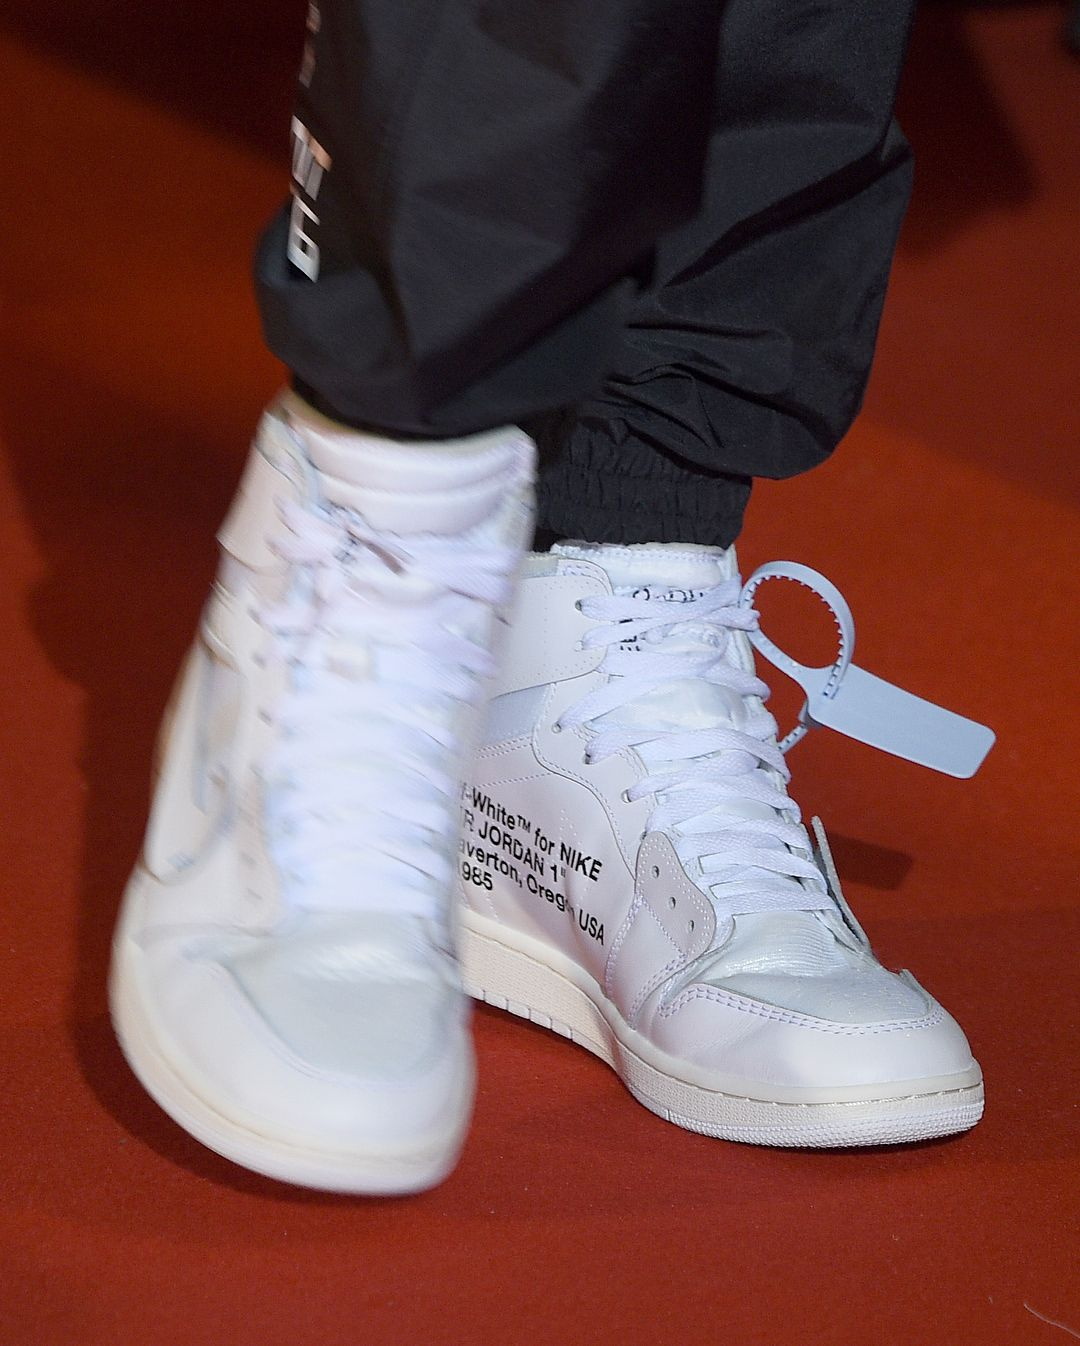 ee9772afc368e4 Another look at the white colorway of the Off-White x Air Jordan 1 by   VirgilAbloh from Paris.